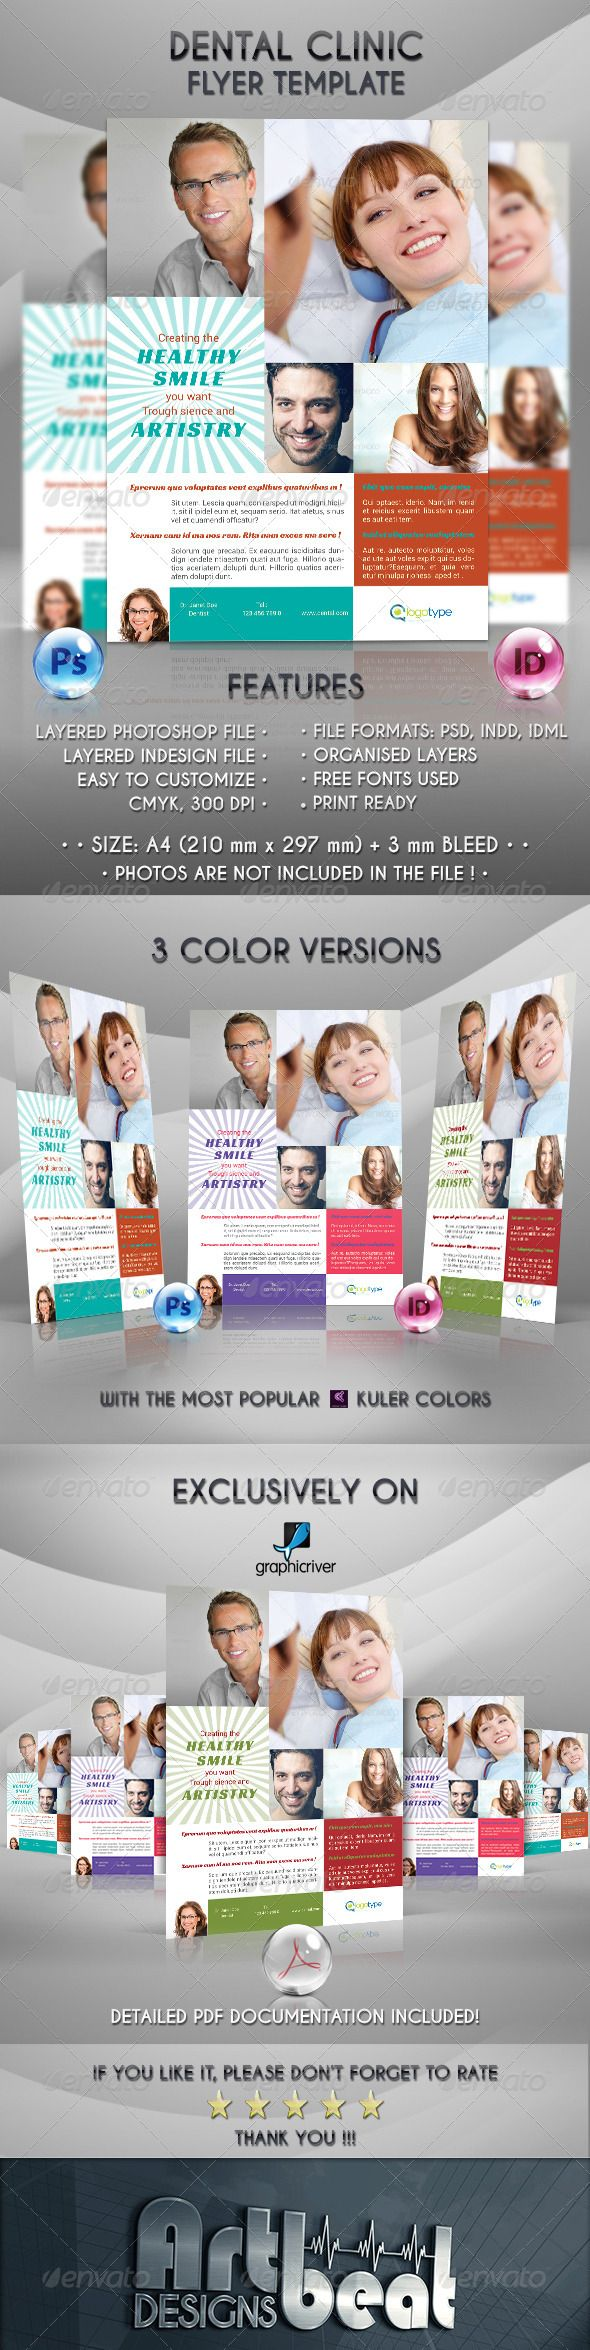 dental clinic flyer template     a4  advertisement  blue  business  clean  clinic  cmyk  company